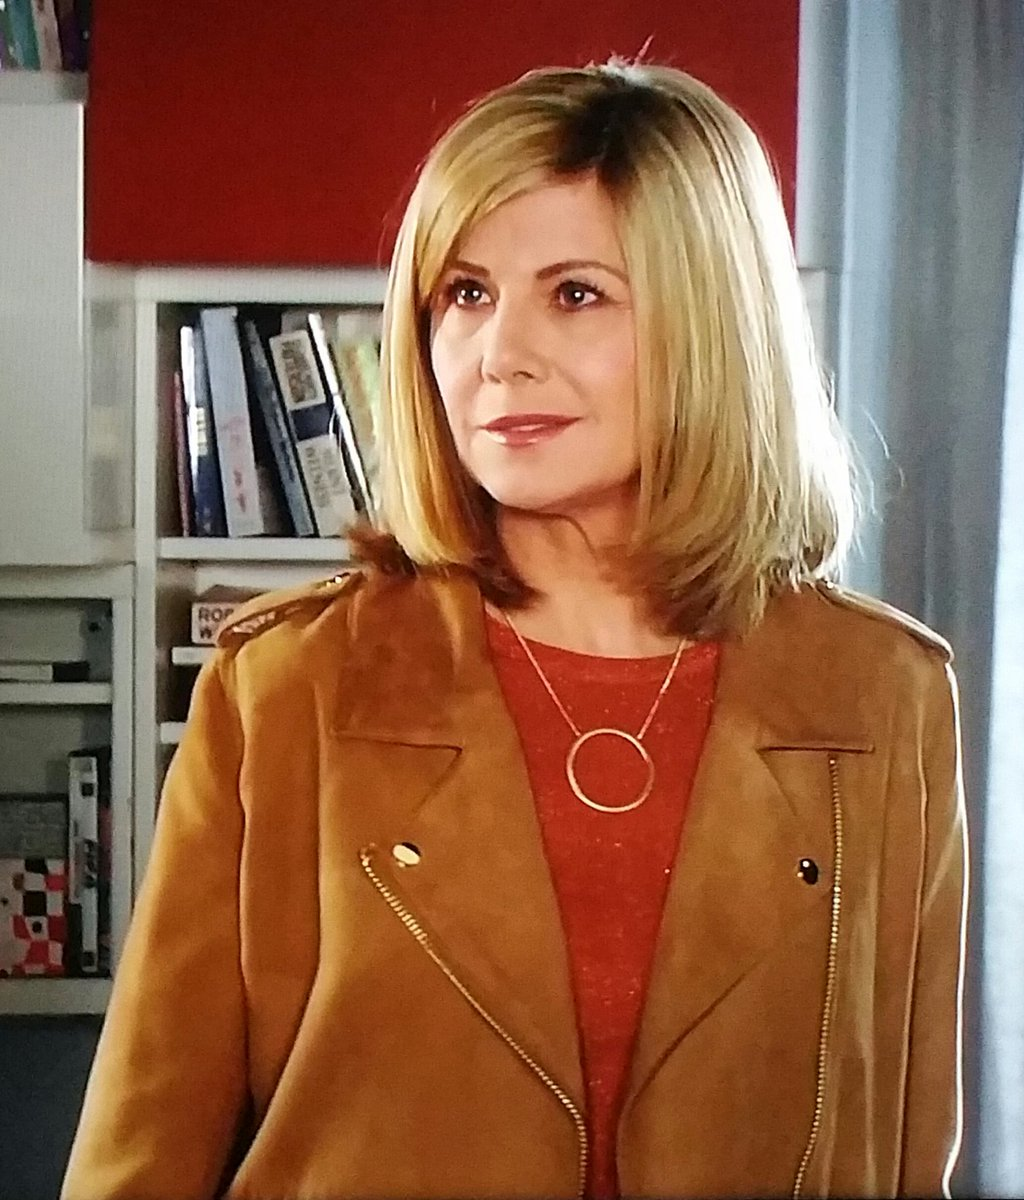 Enjoyed that @MsGlynisBarber I do love #Glenda @bbceastenders #Eastenders https://t.co/hWKU2PLP5k